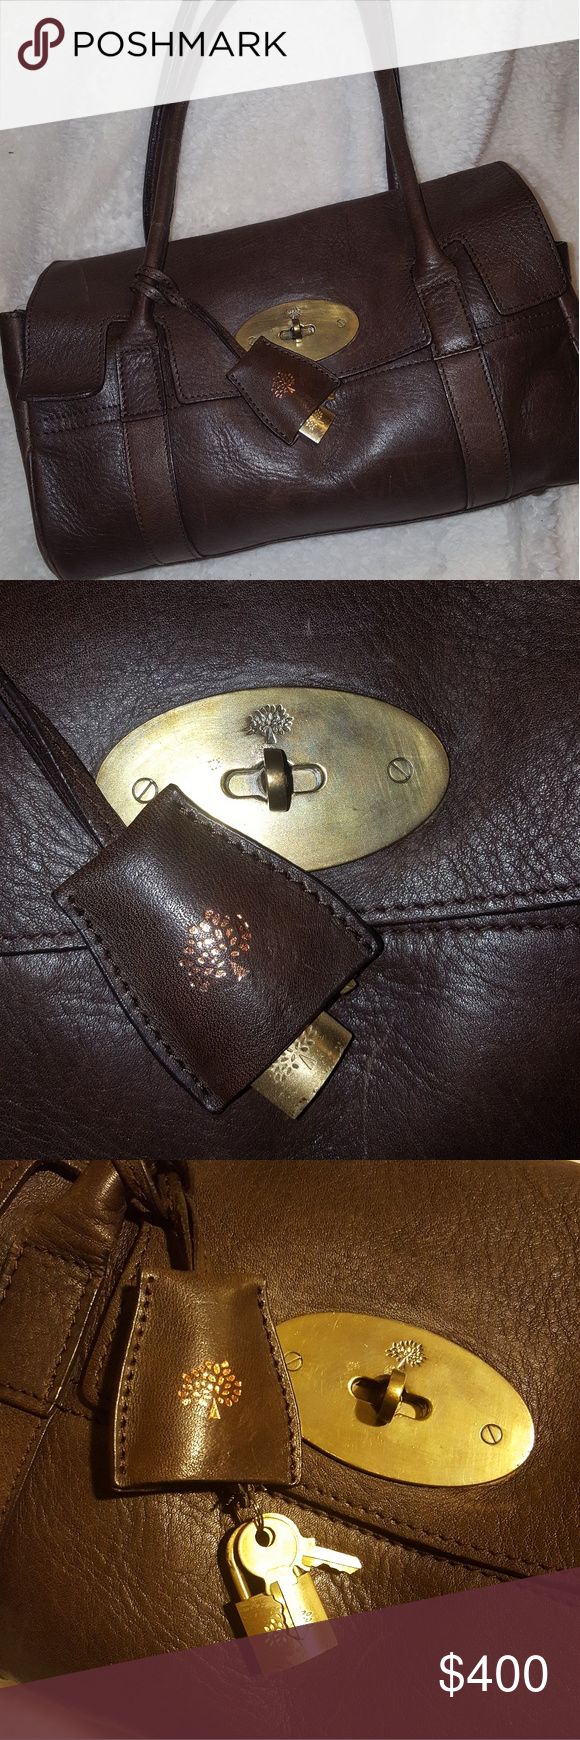 Vintage Mulberry Bayswater Great condition vintage Mulberry Bayswater bag. Measures 13 x 7 with an 8 inch drop in the handle. Light scuffs on the exterior leather. Willing to trade this bag, make an offer. Mulberry Bags #mulberrybag